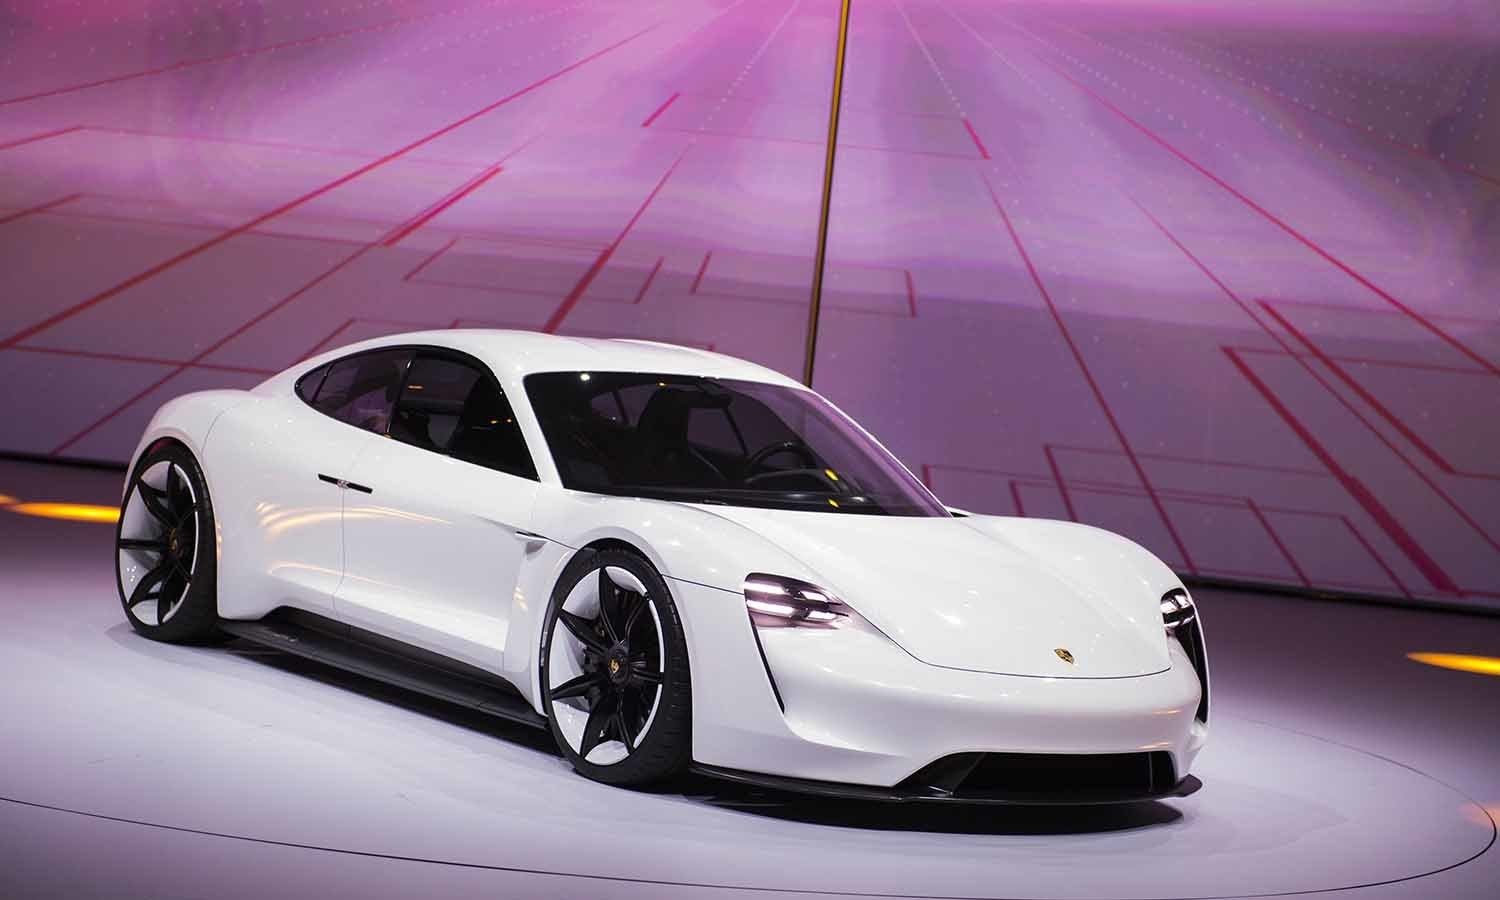 The new electric Porsche Mission E concept car is presented during the Volkswagen group night. ─ Reuters